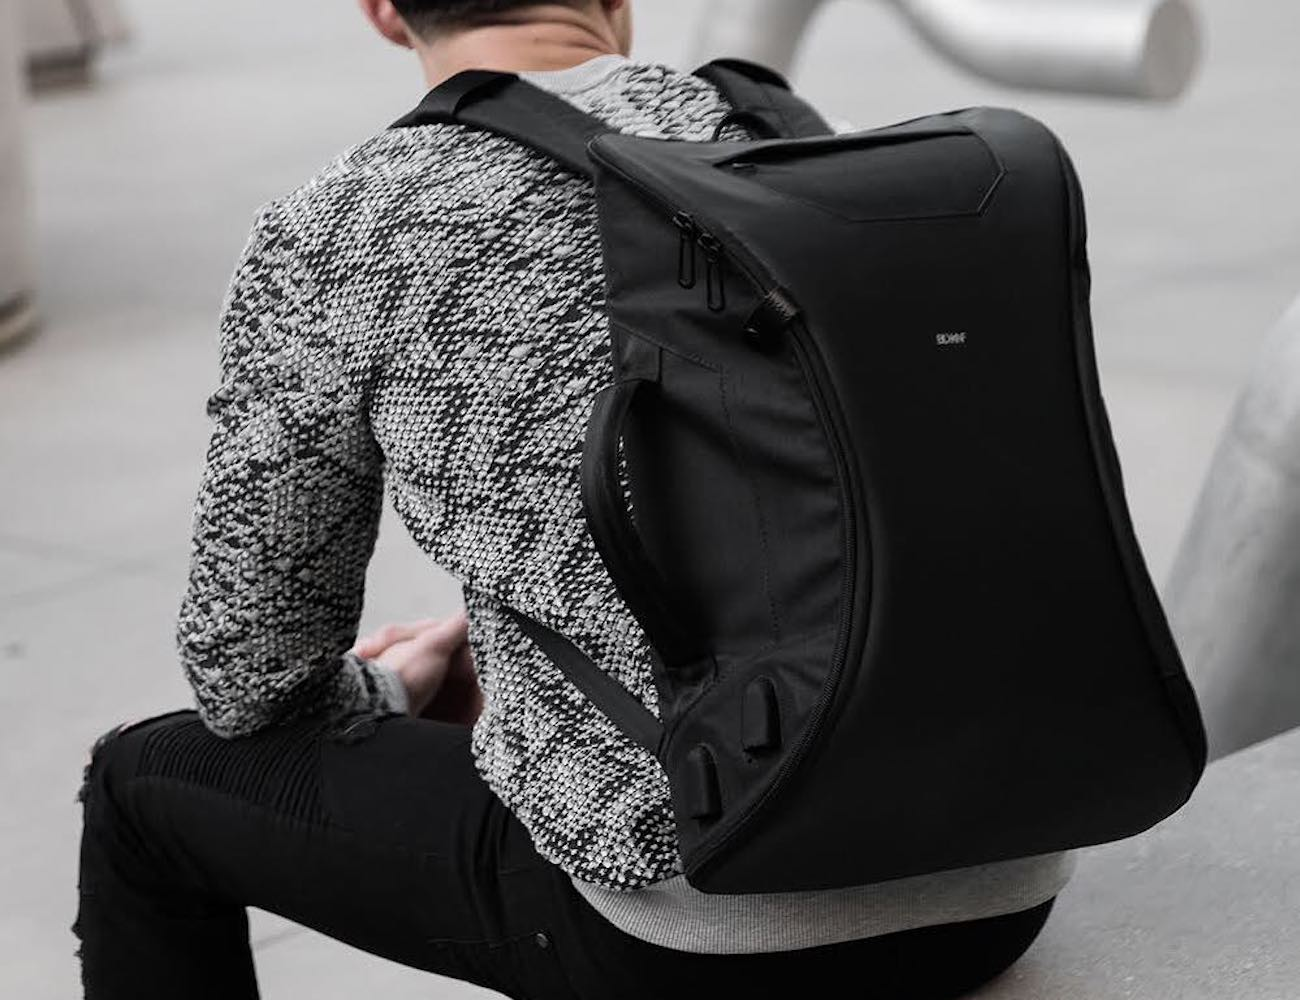 BLACKKNIFE M-1 Functional Daily Backpack brings your office anywhere